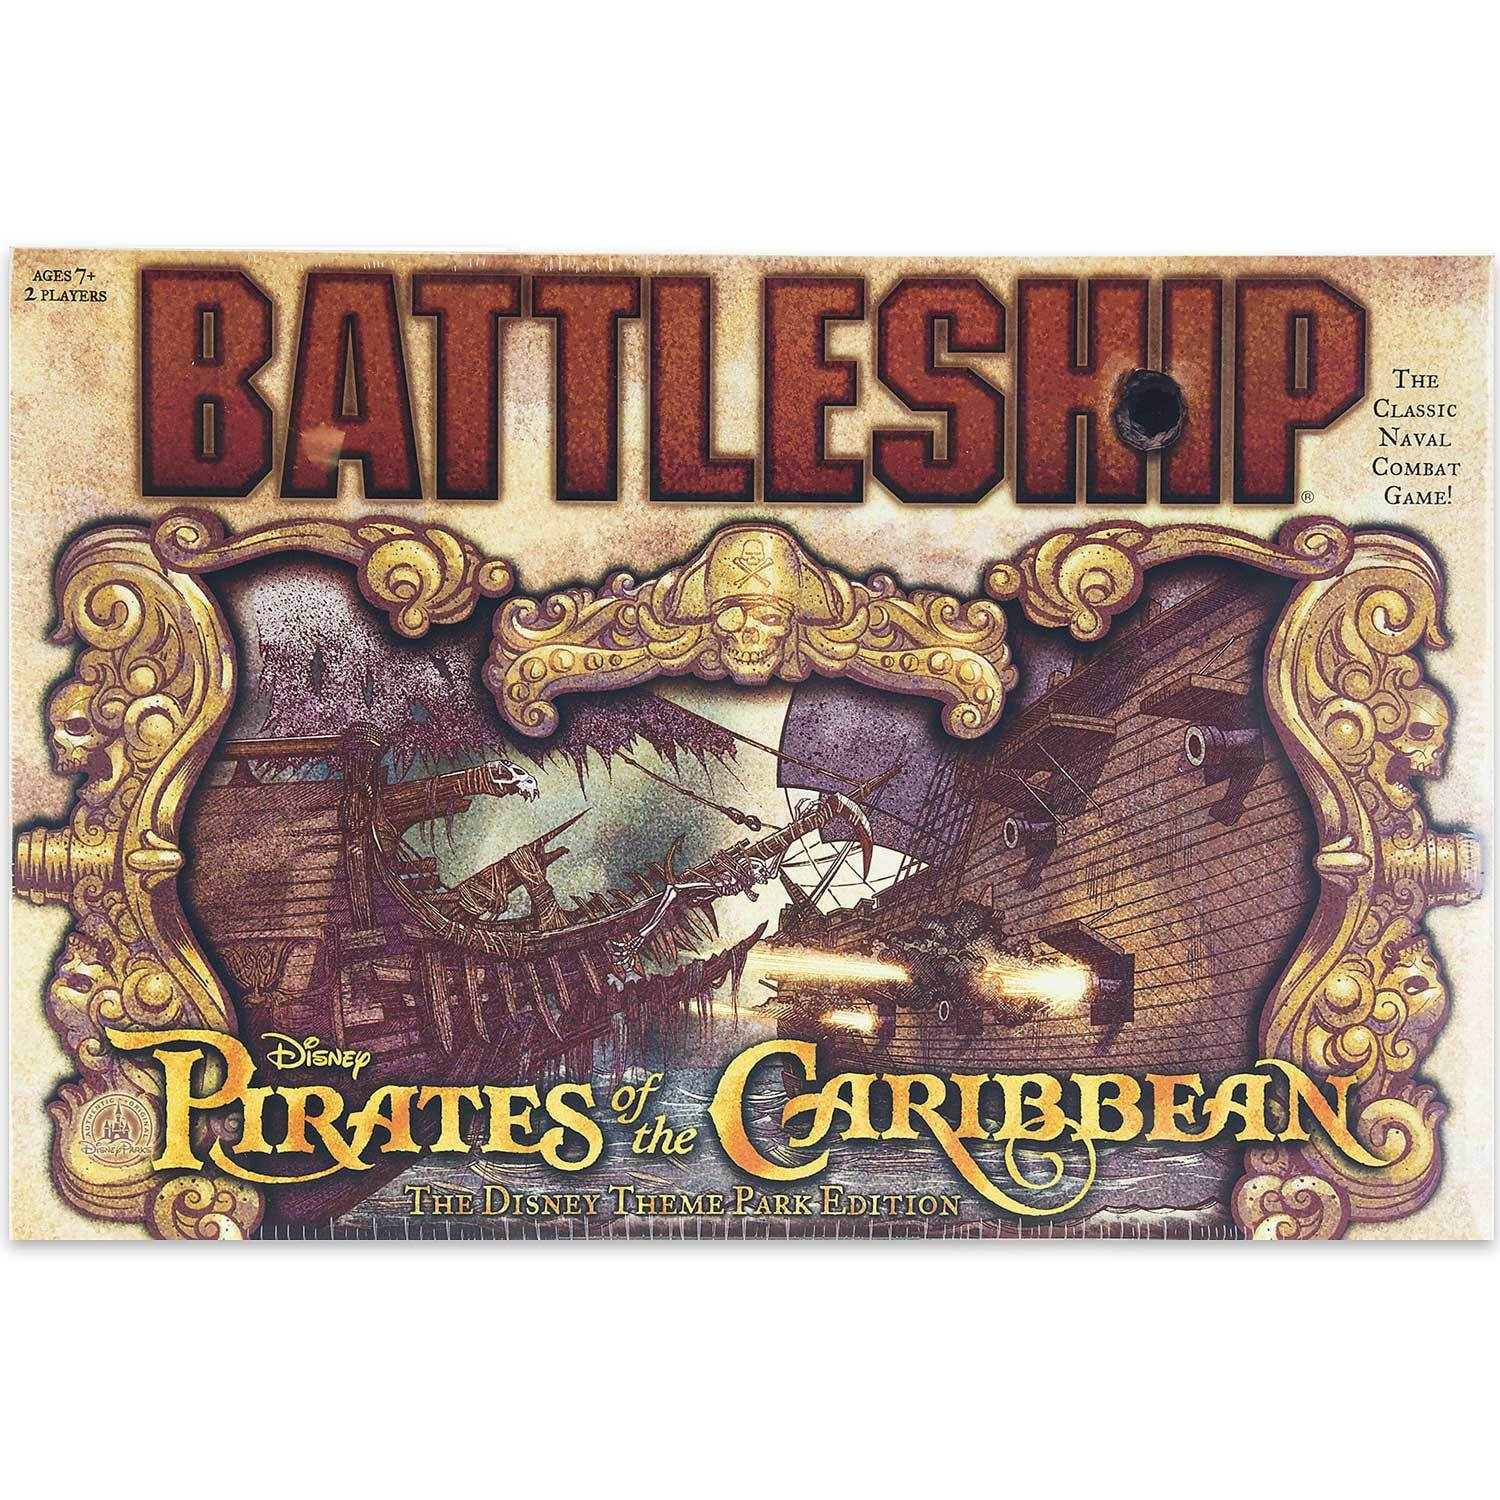 Pirates of the Caribbean Battleship photo